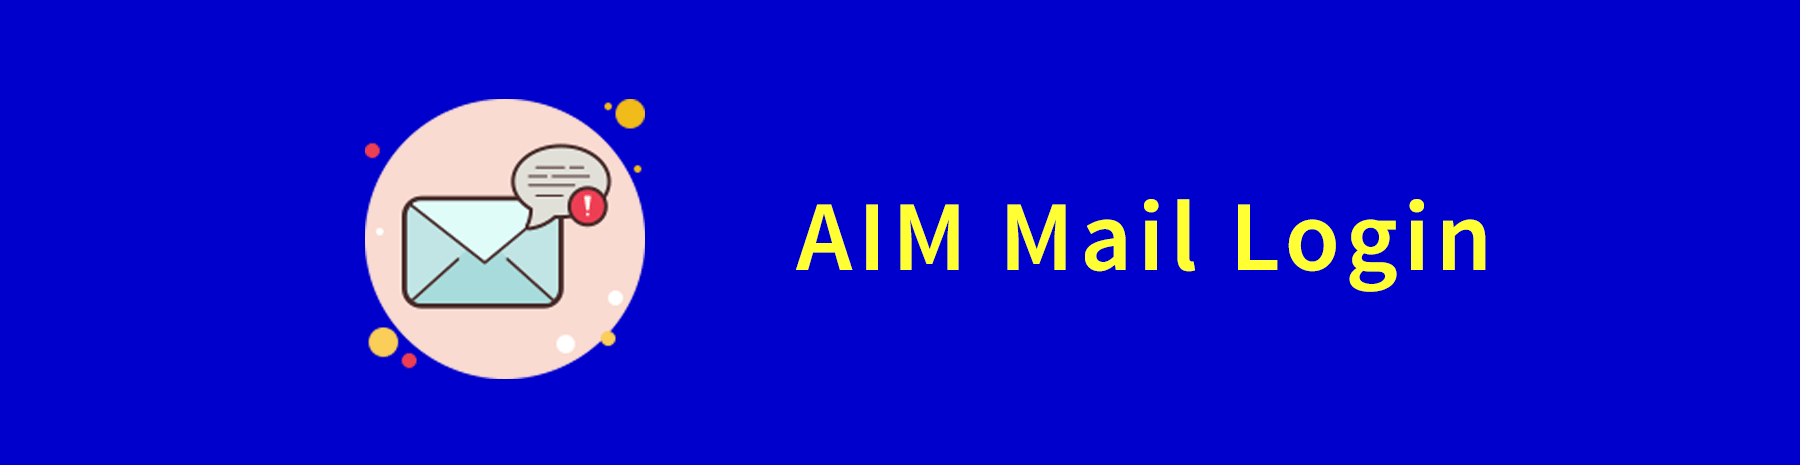 AIM Mail Login